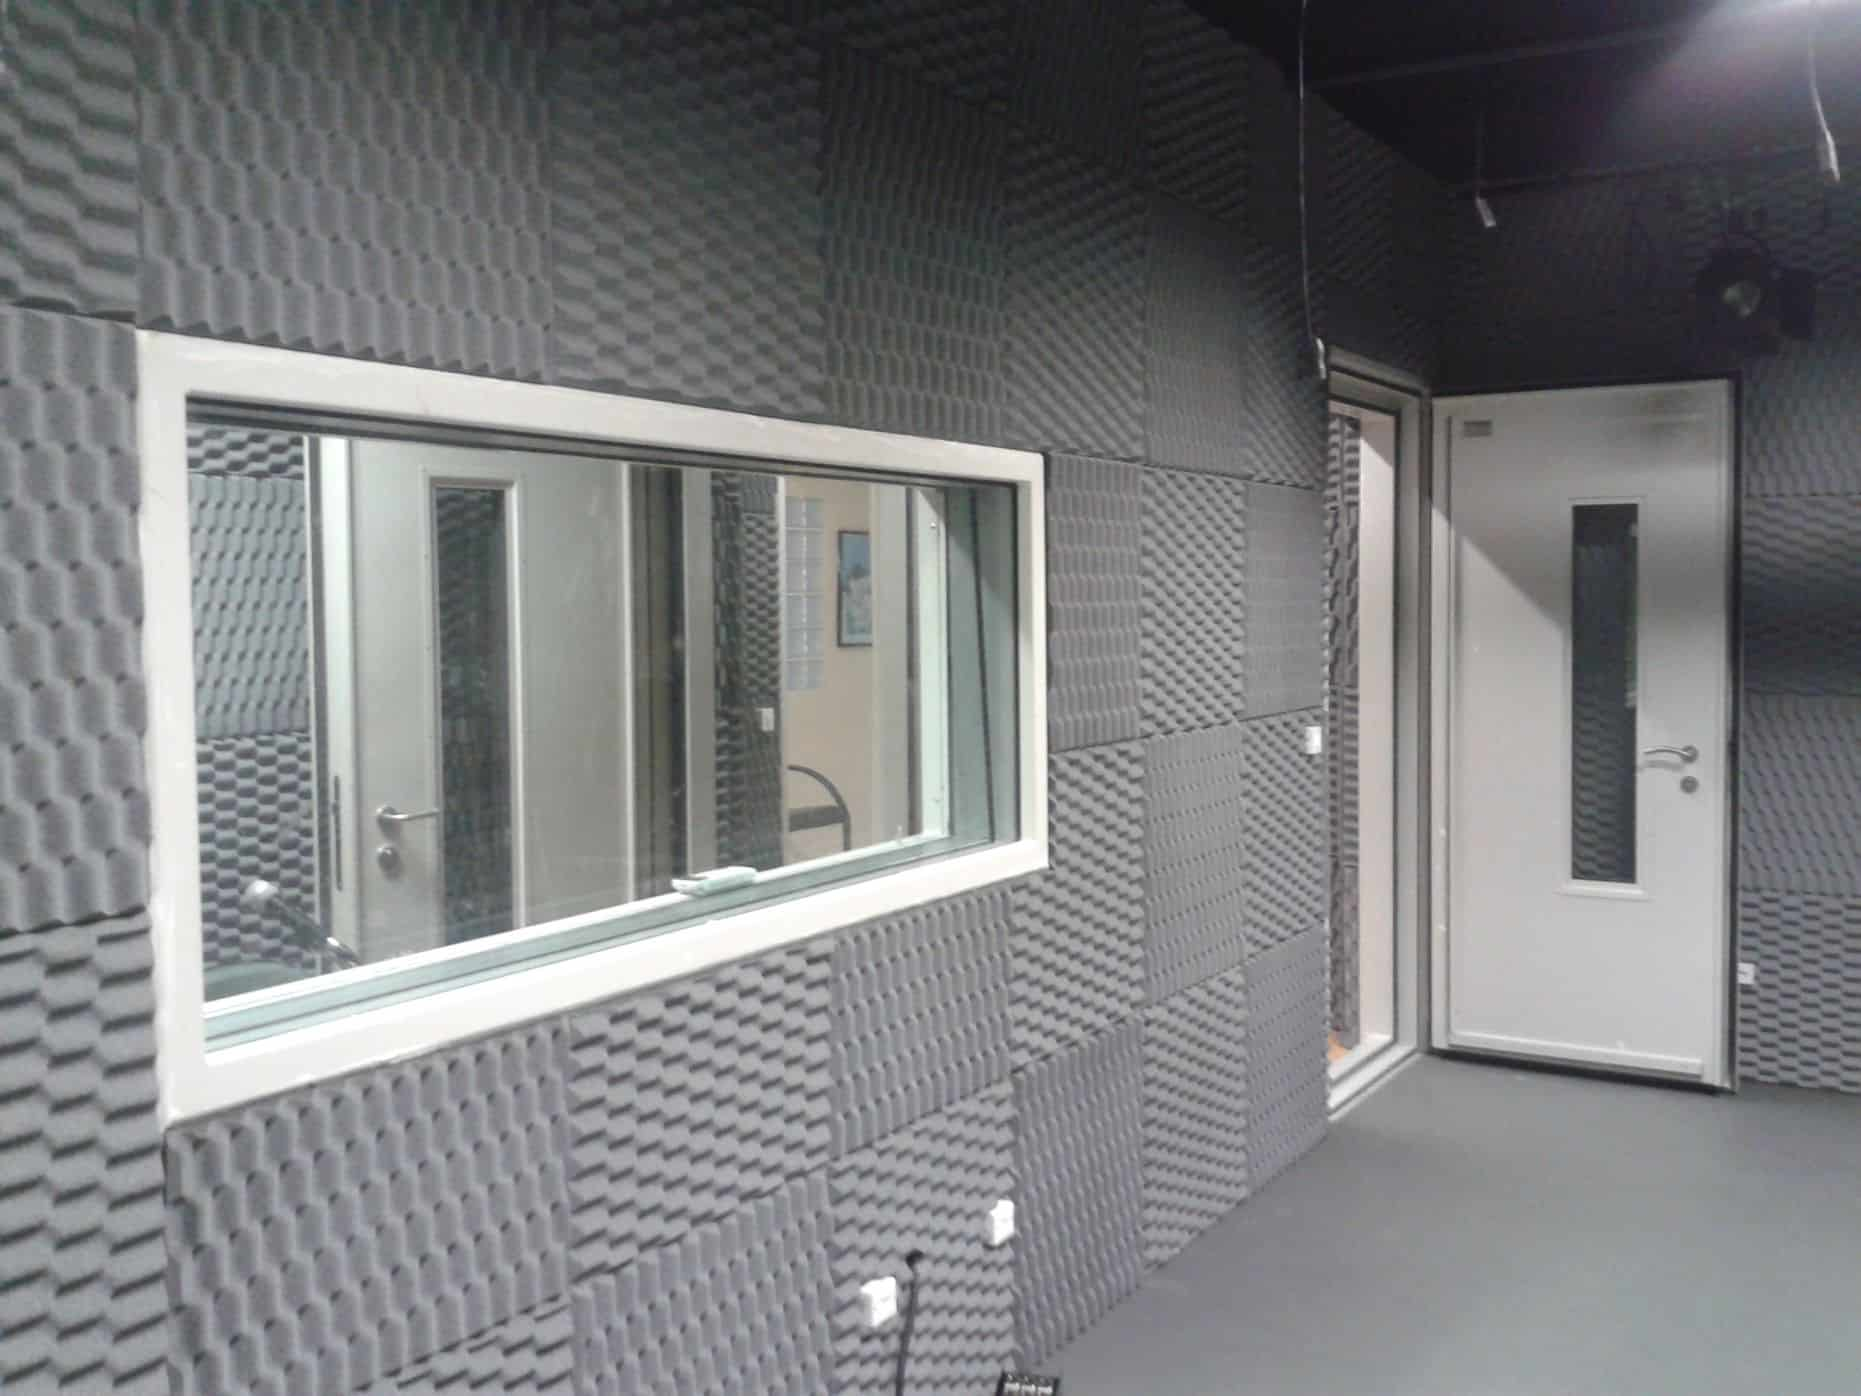 Acoustic control glass